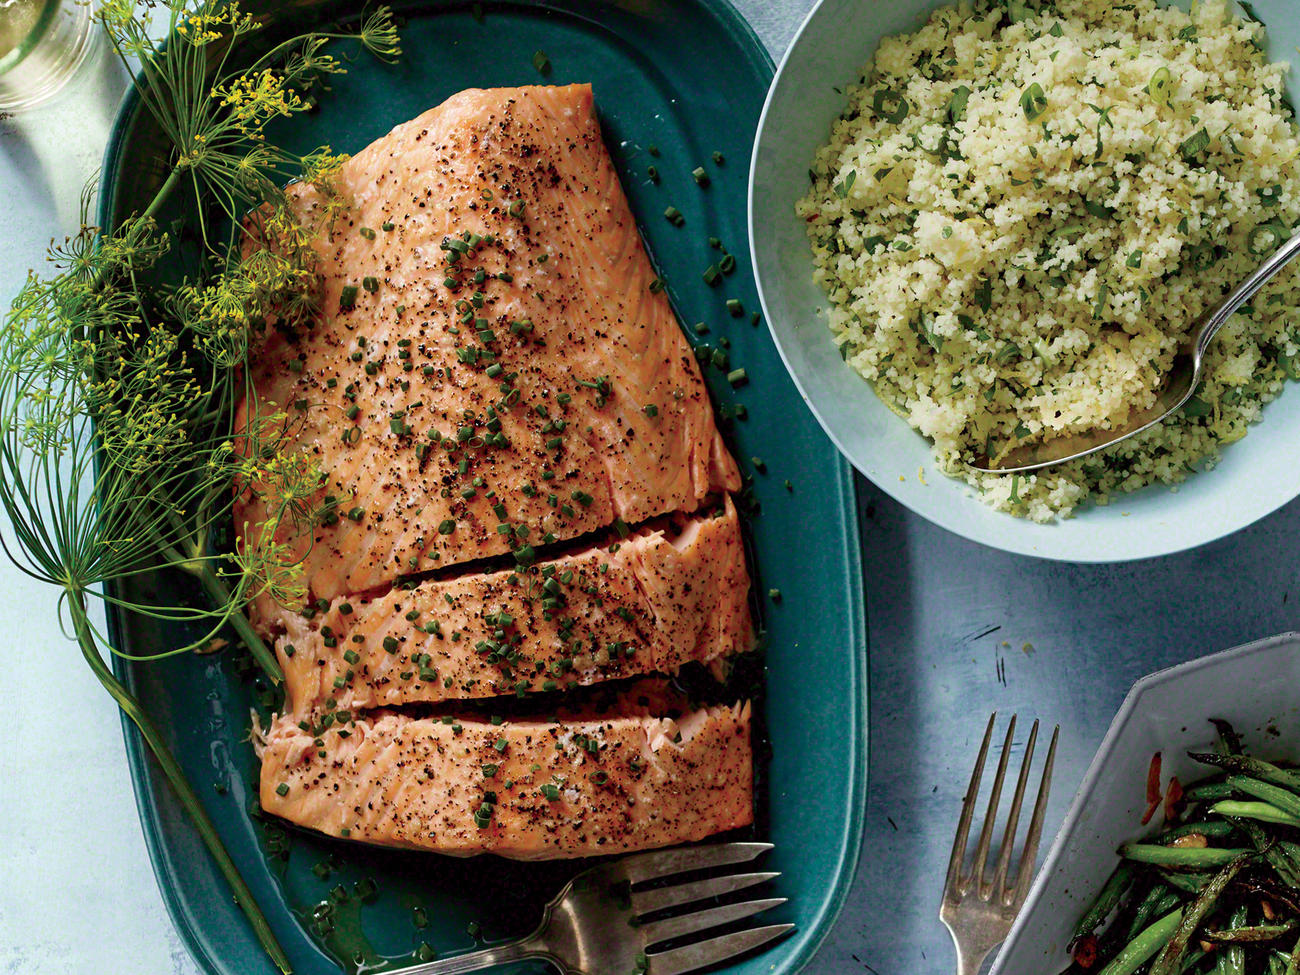 Roasted Side of Salmon with Shallot Cream